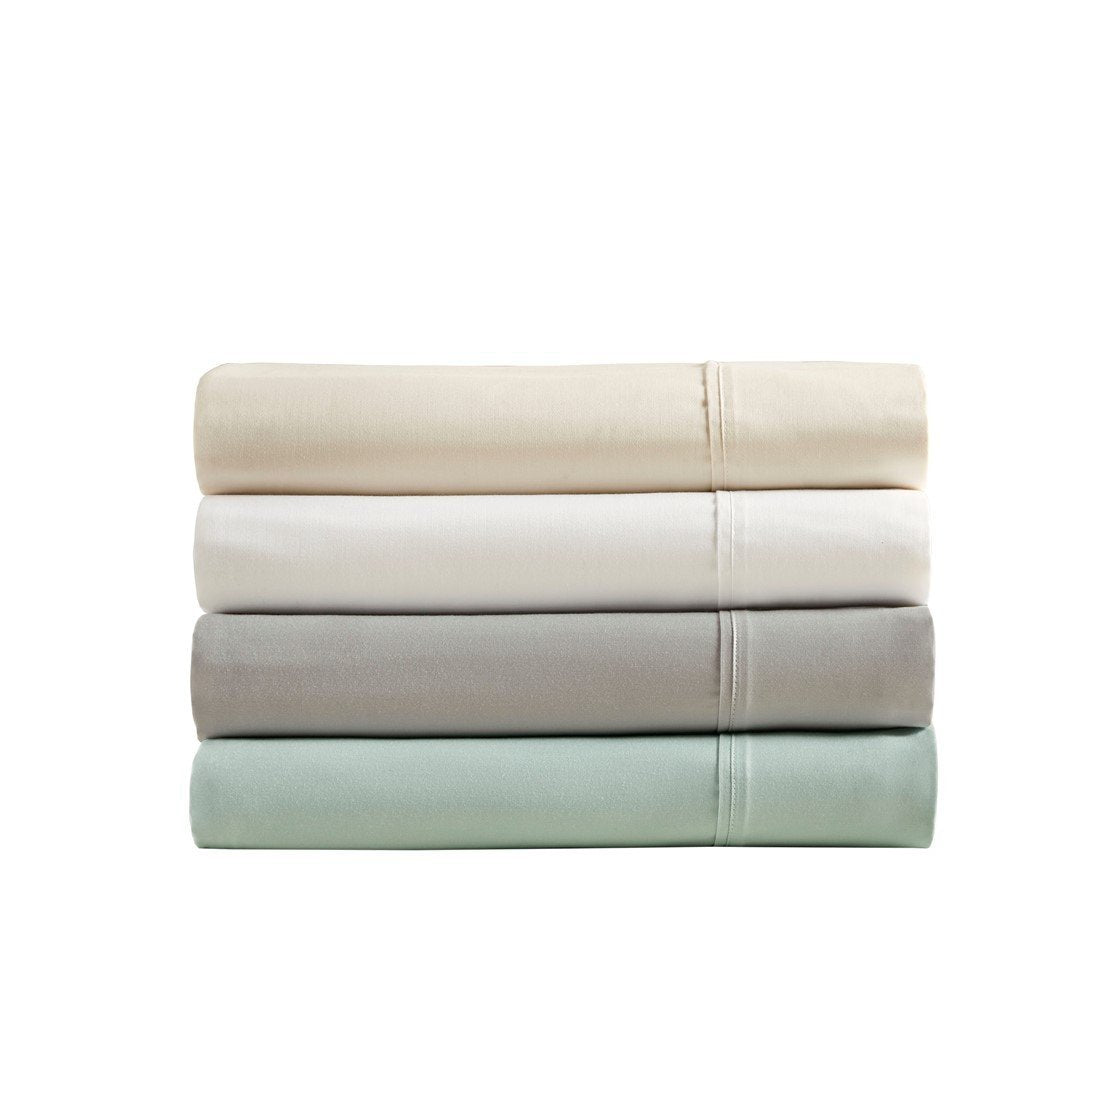 400 Thread Count Wrinkle Resistant Cotton Sateen Sheet Set